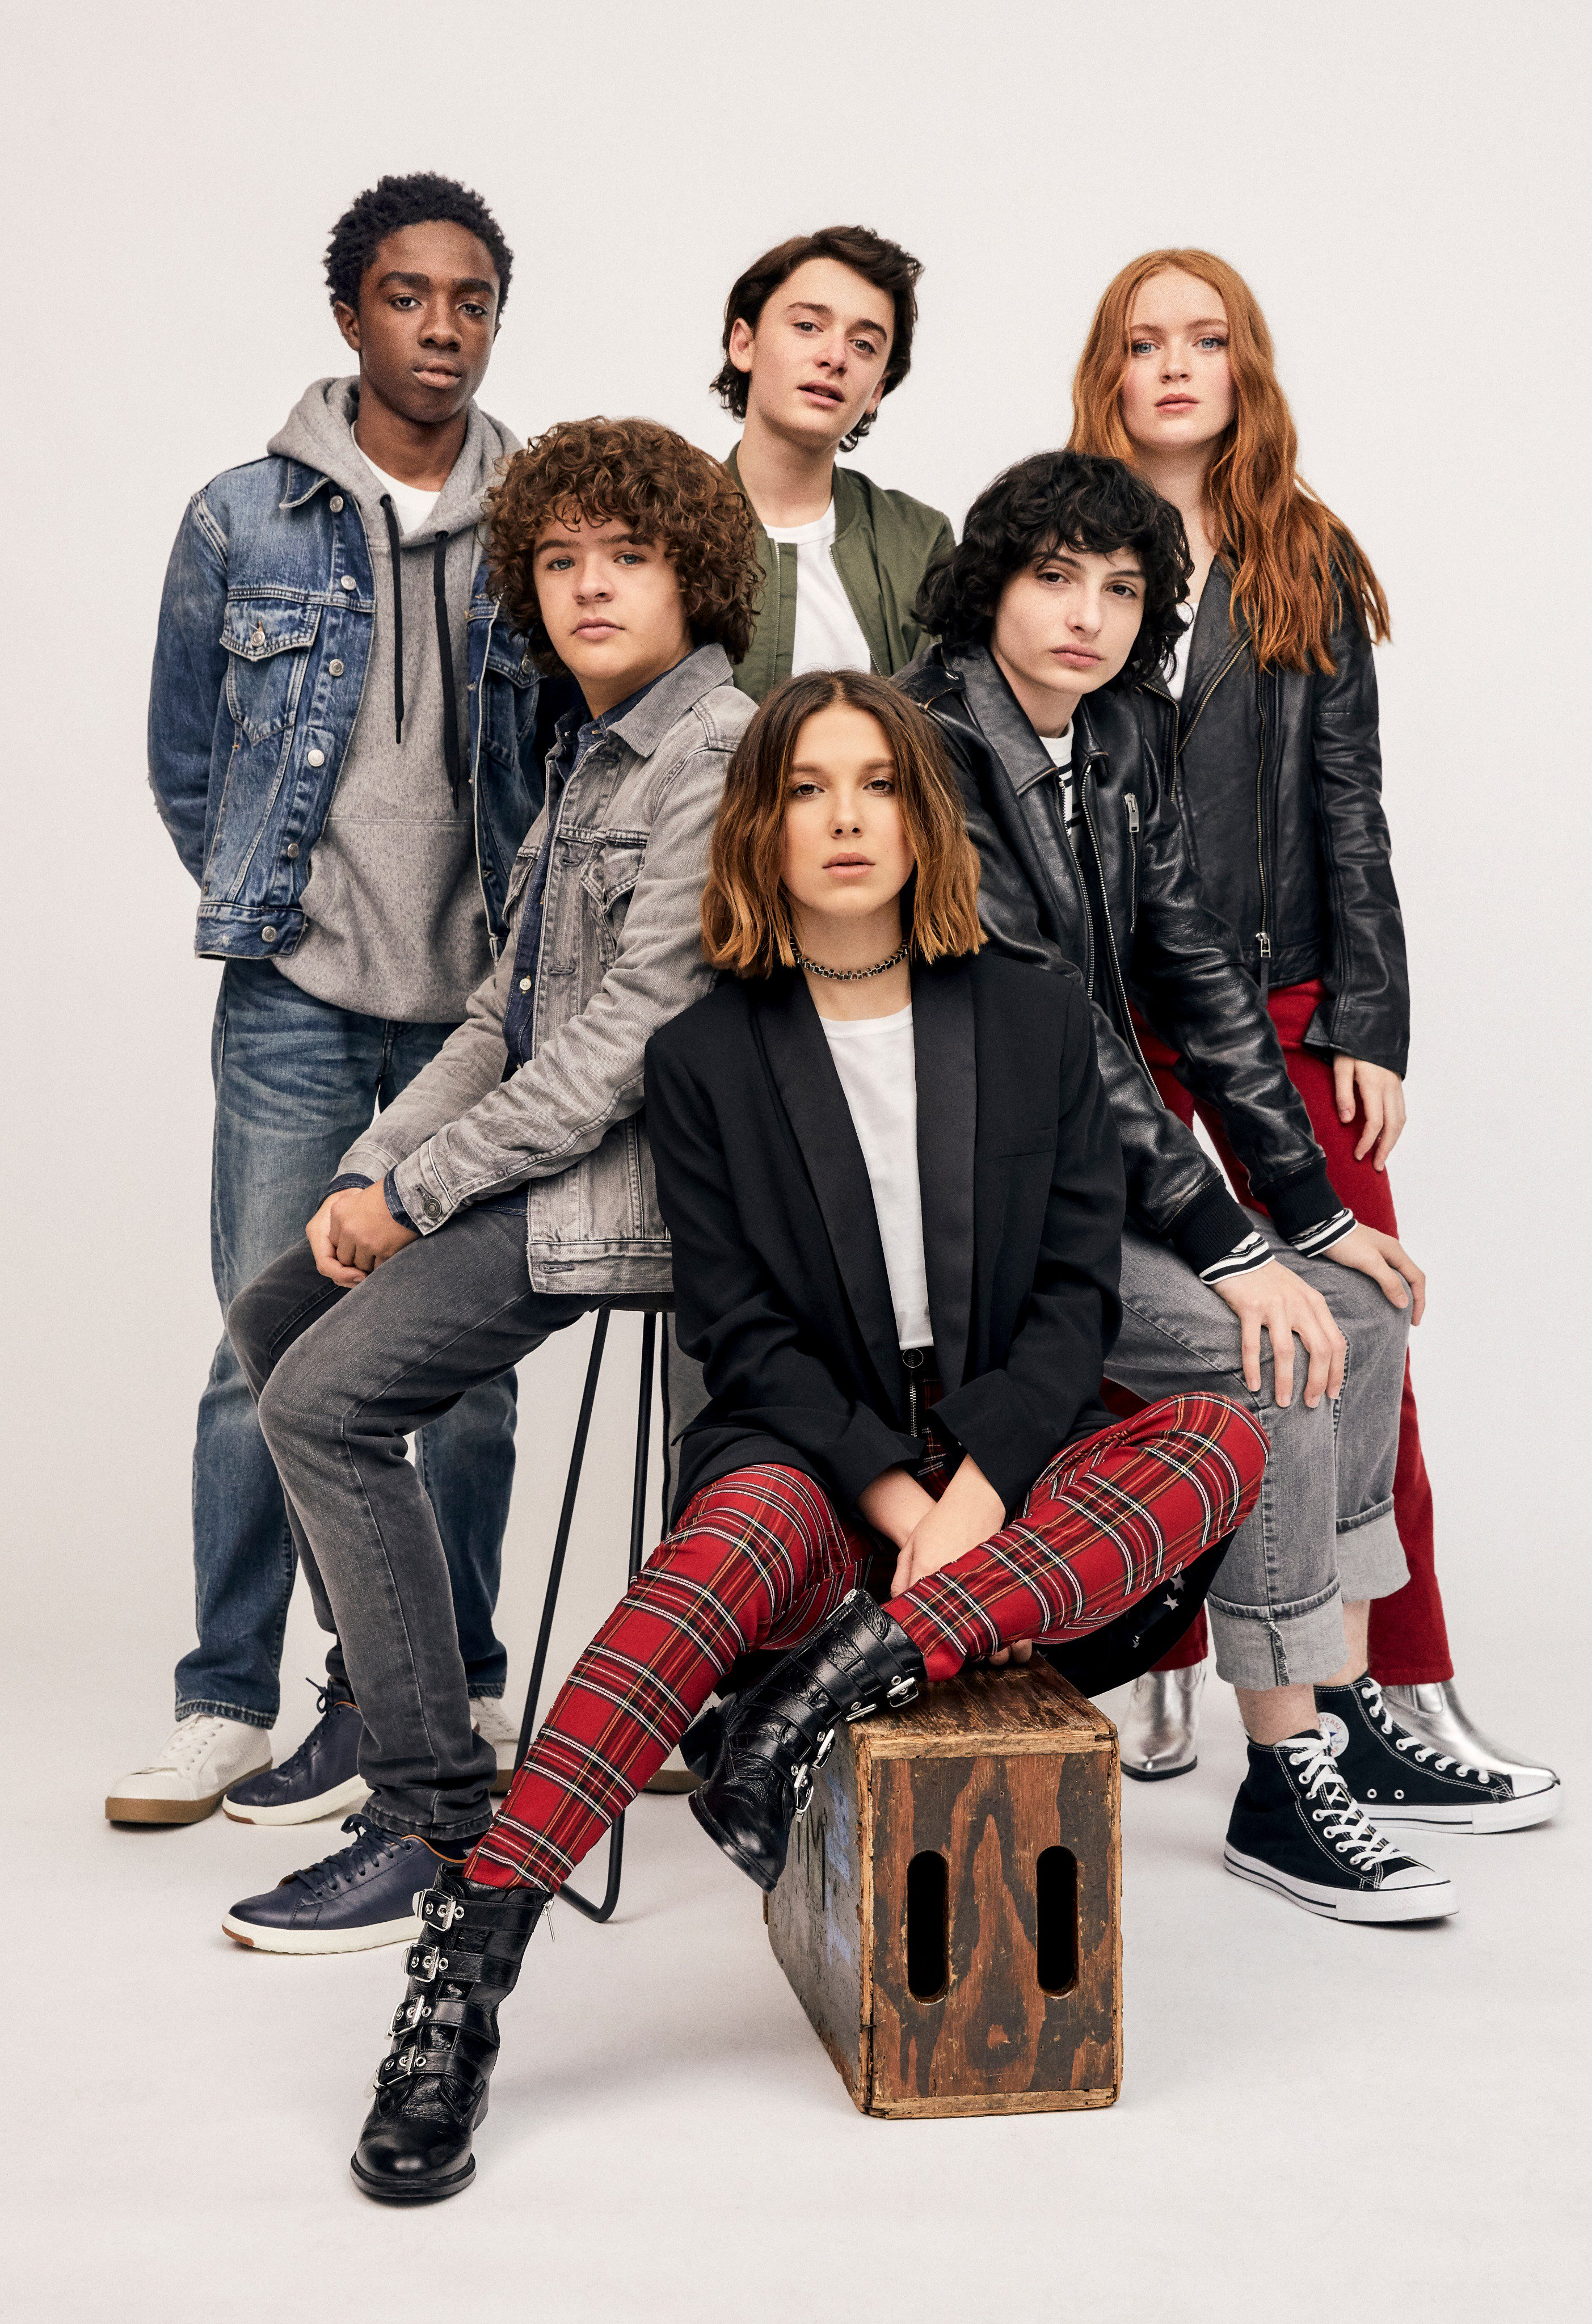 Sadie Sink and the Stranger Things cast - Rolling Stone Columbia Photoshoot - 2019